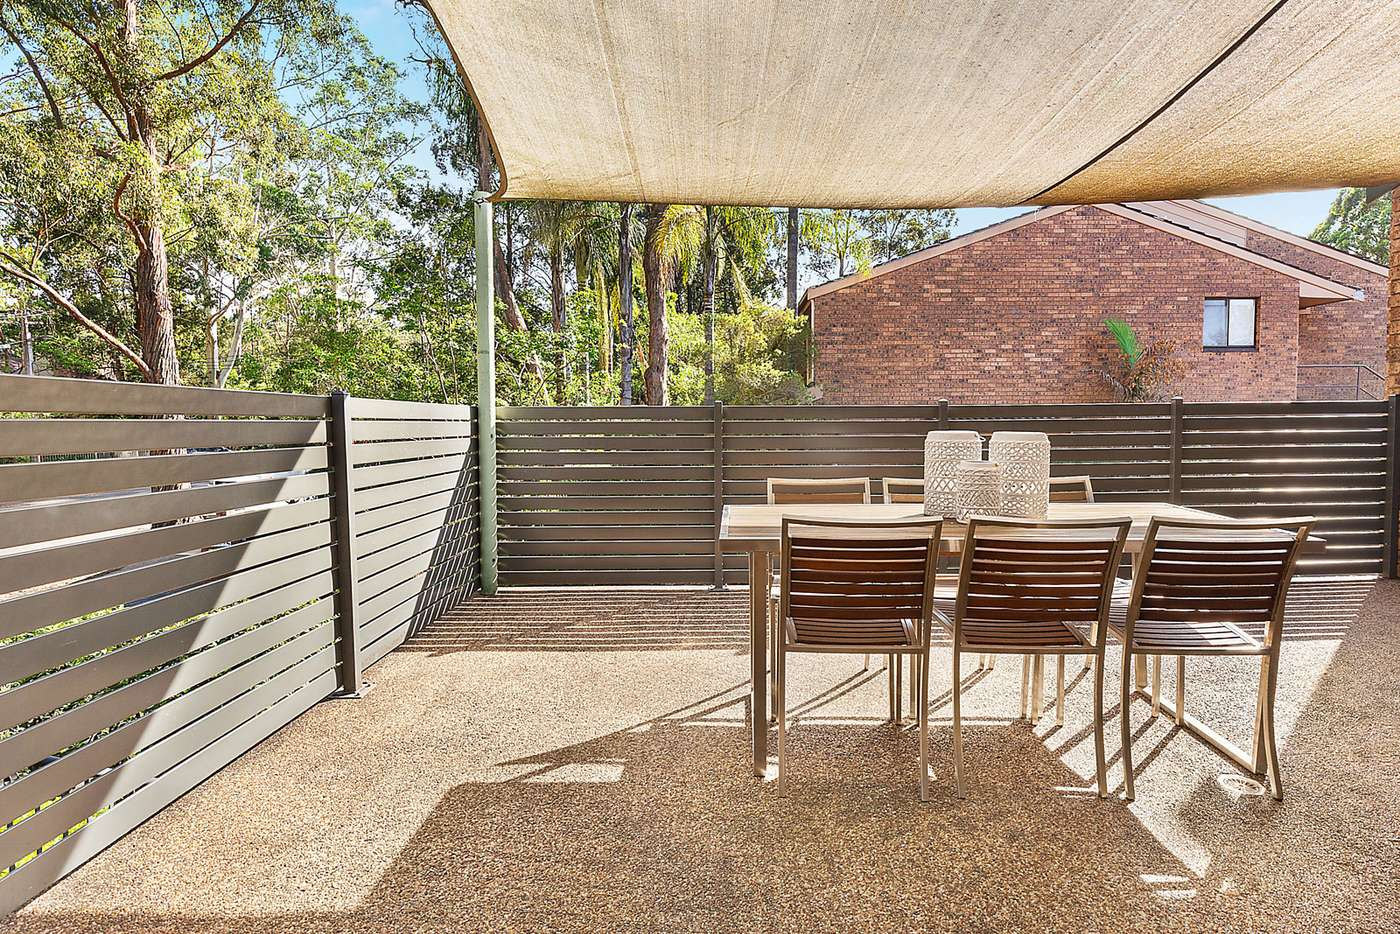 Fifth view of Homely villa listing, 12/13 Busaco Road, Marsfield NSW 2122